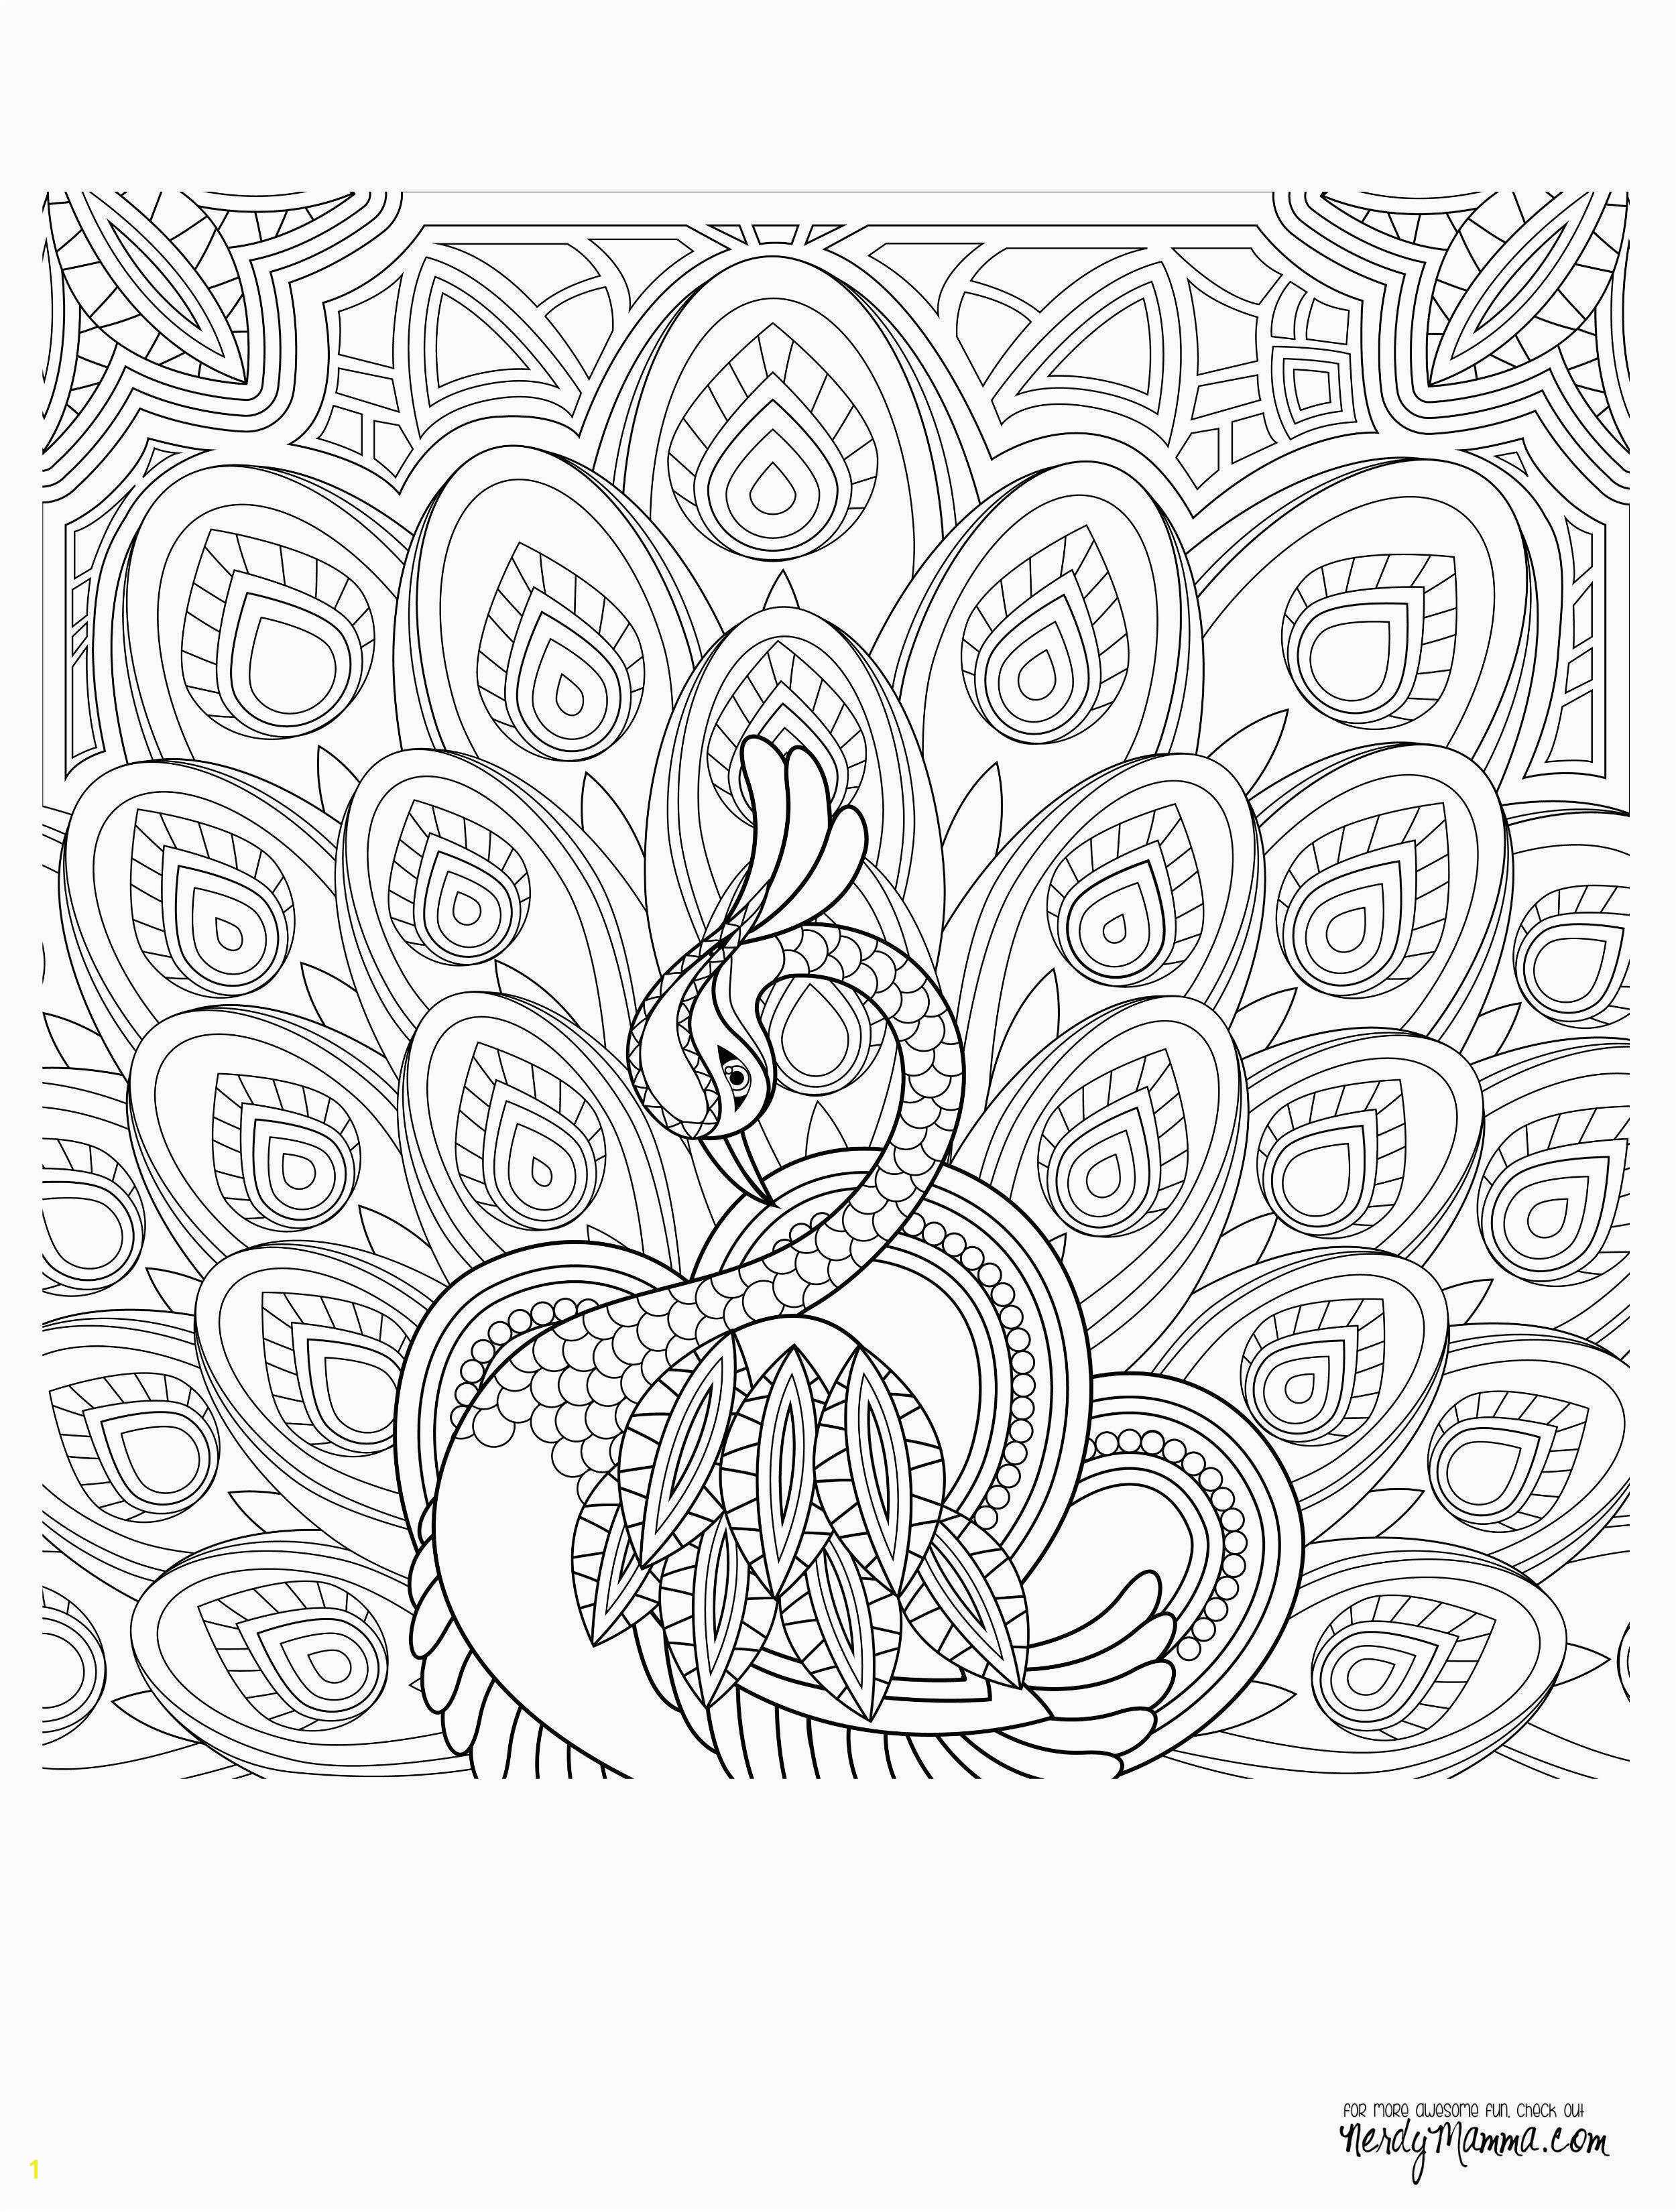 Christmas Gingerbread Man Coloring Pages Candy Coloring Pages Elegant Home Coloring Pages Best Color Sheet 0d